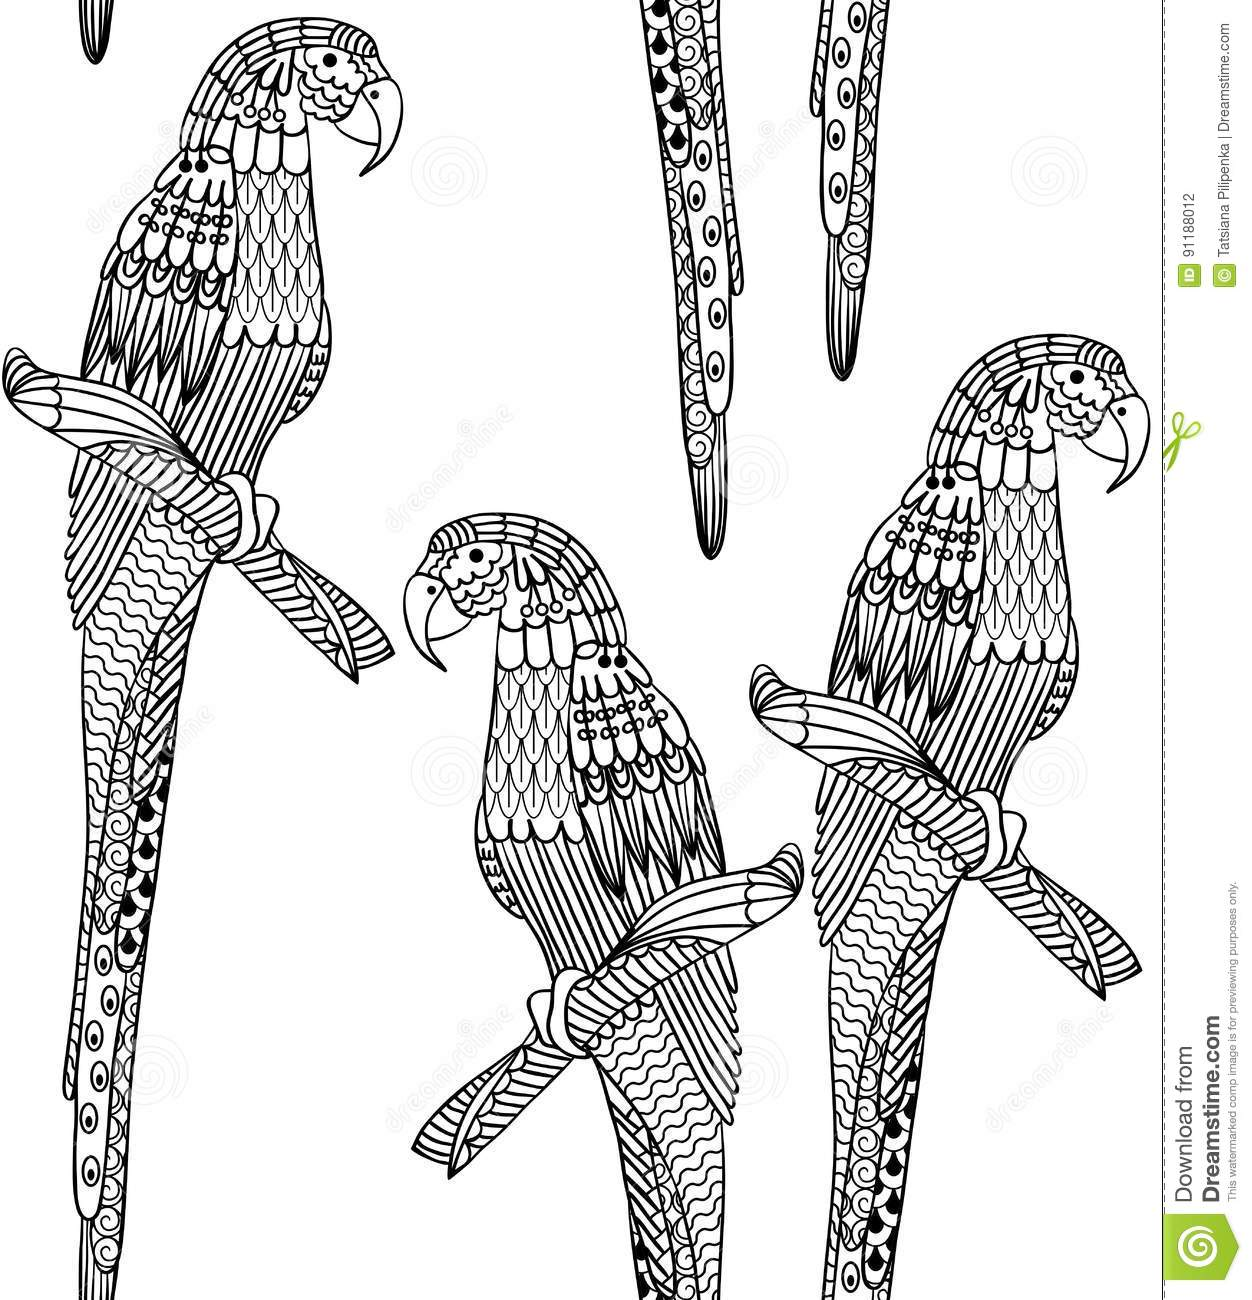 Flying macaw coloring pages - dinocro.info